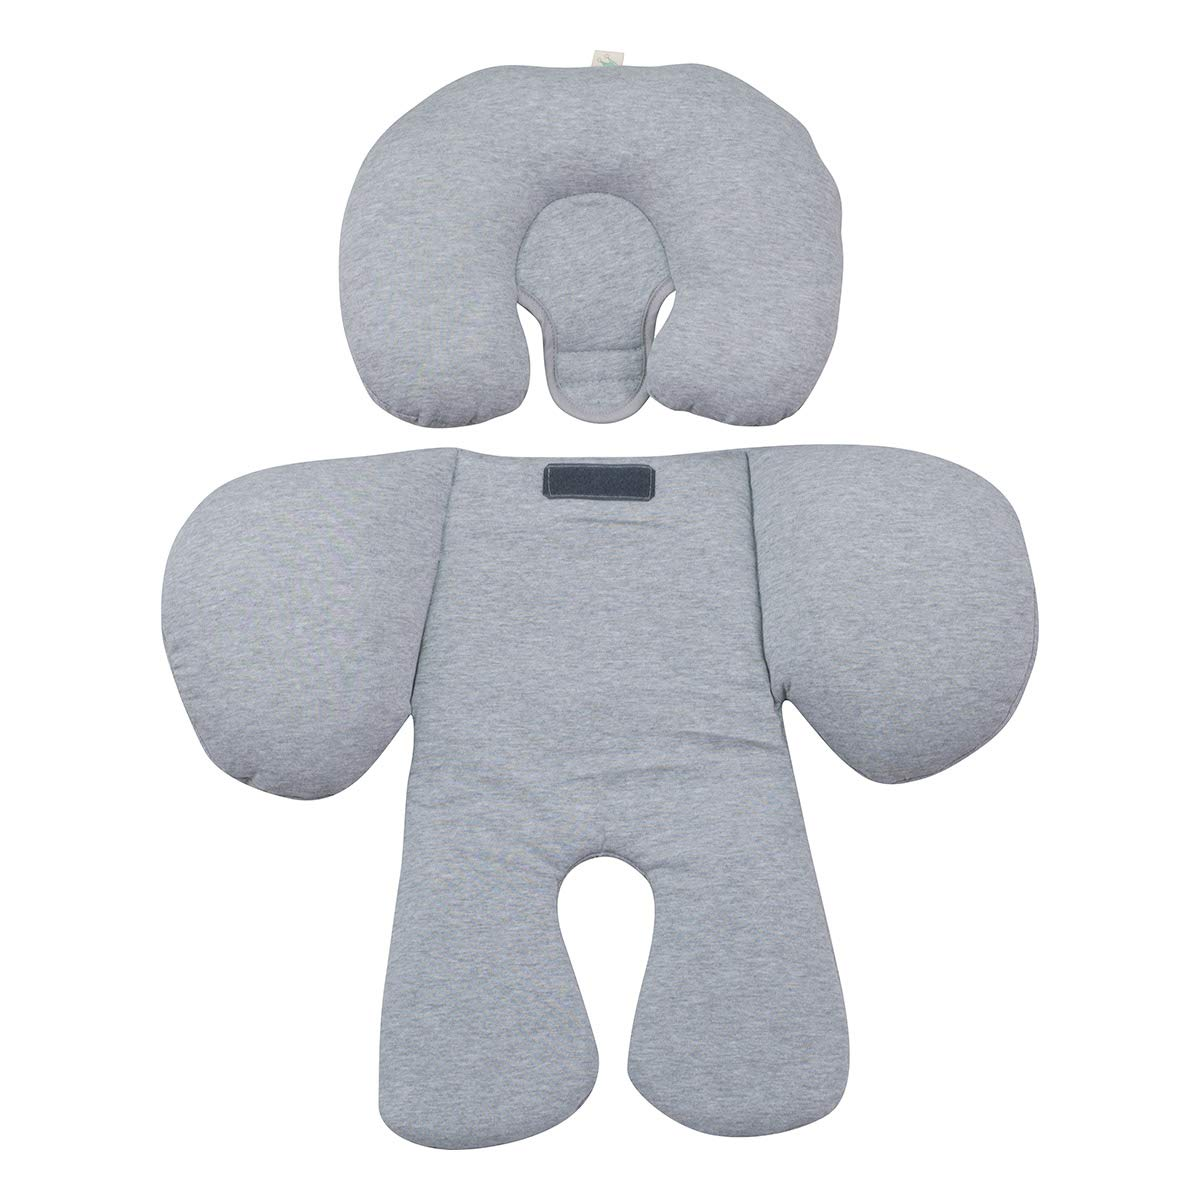 antiallergic JANABEBE Reducer Support Cushion for Head /& Body Baby support made in cotton